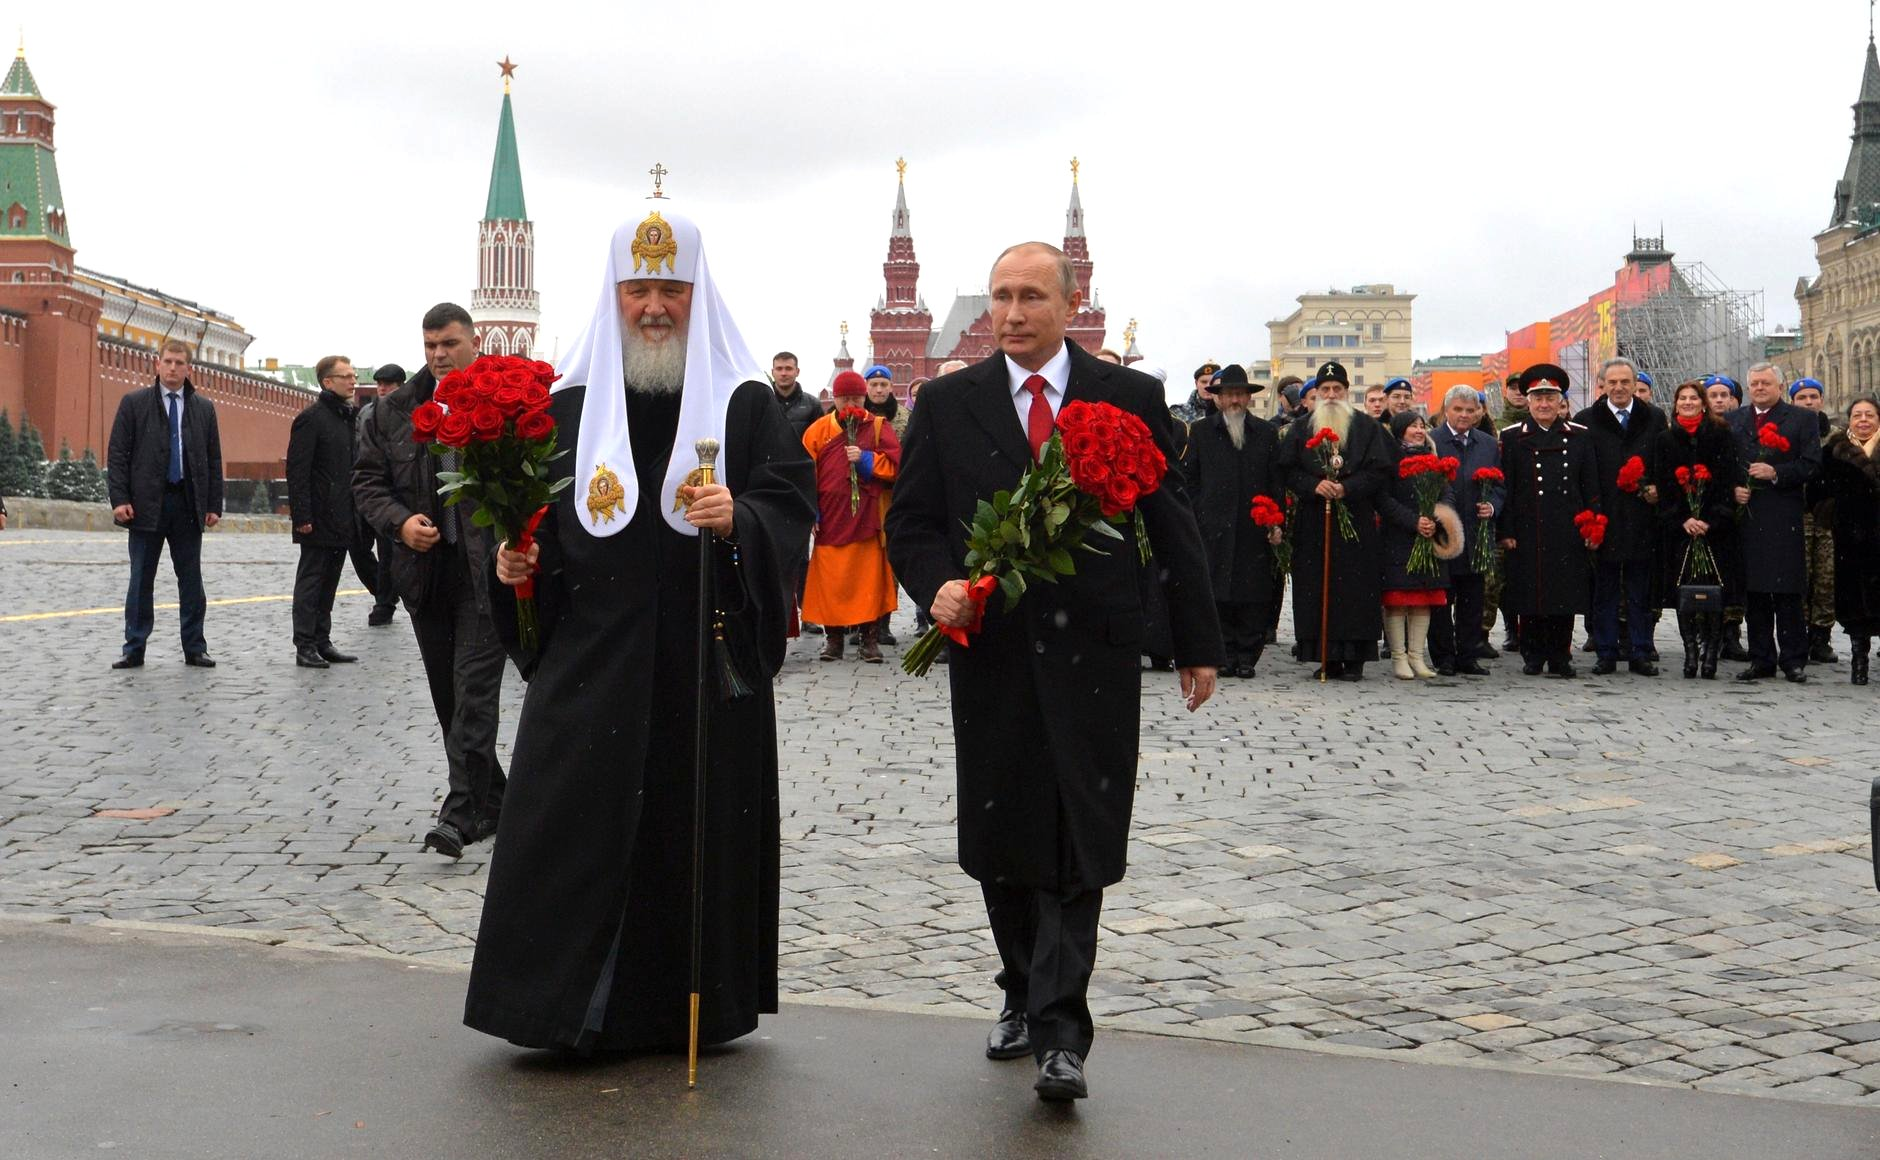 Vladimir Putin laid flowers at the monument to Minin and Pozharsky on Red Square. With Patriarch Kirill of Moscow and All Russia.